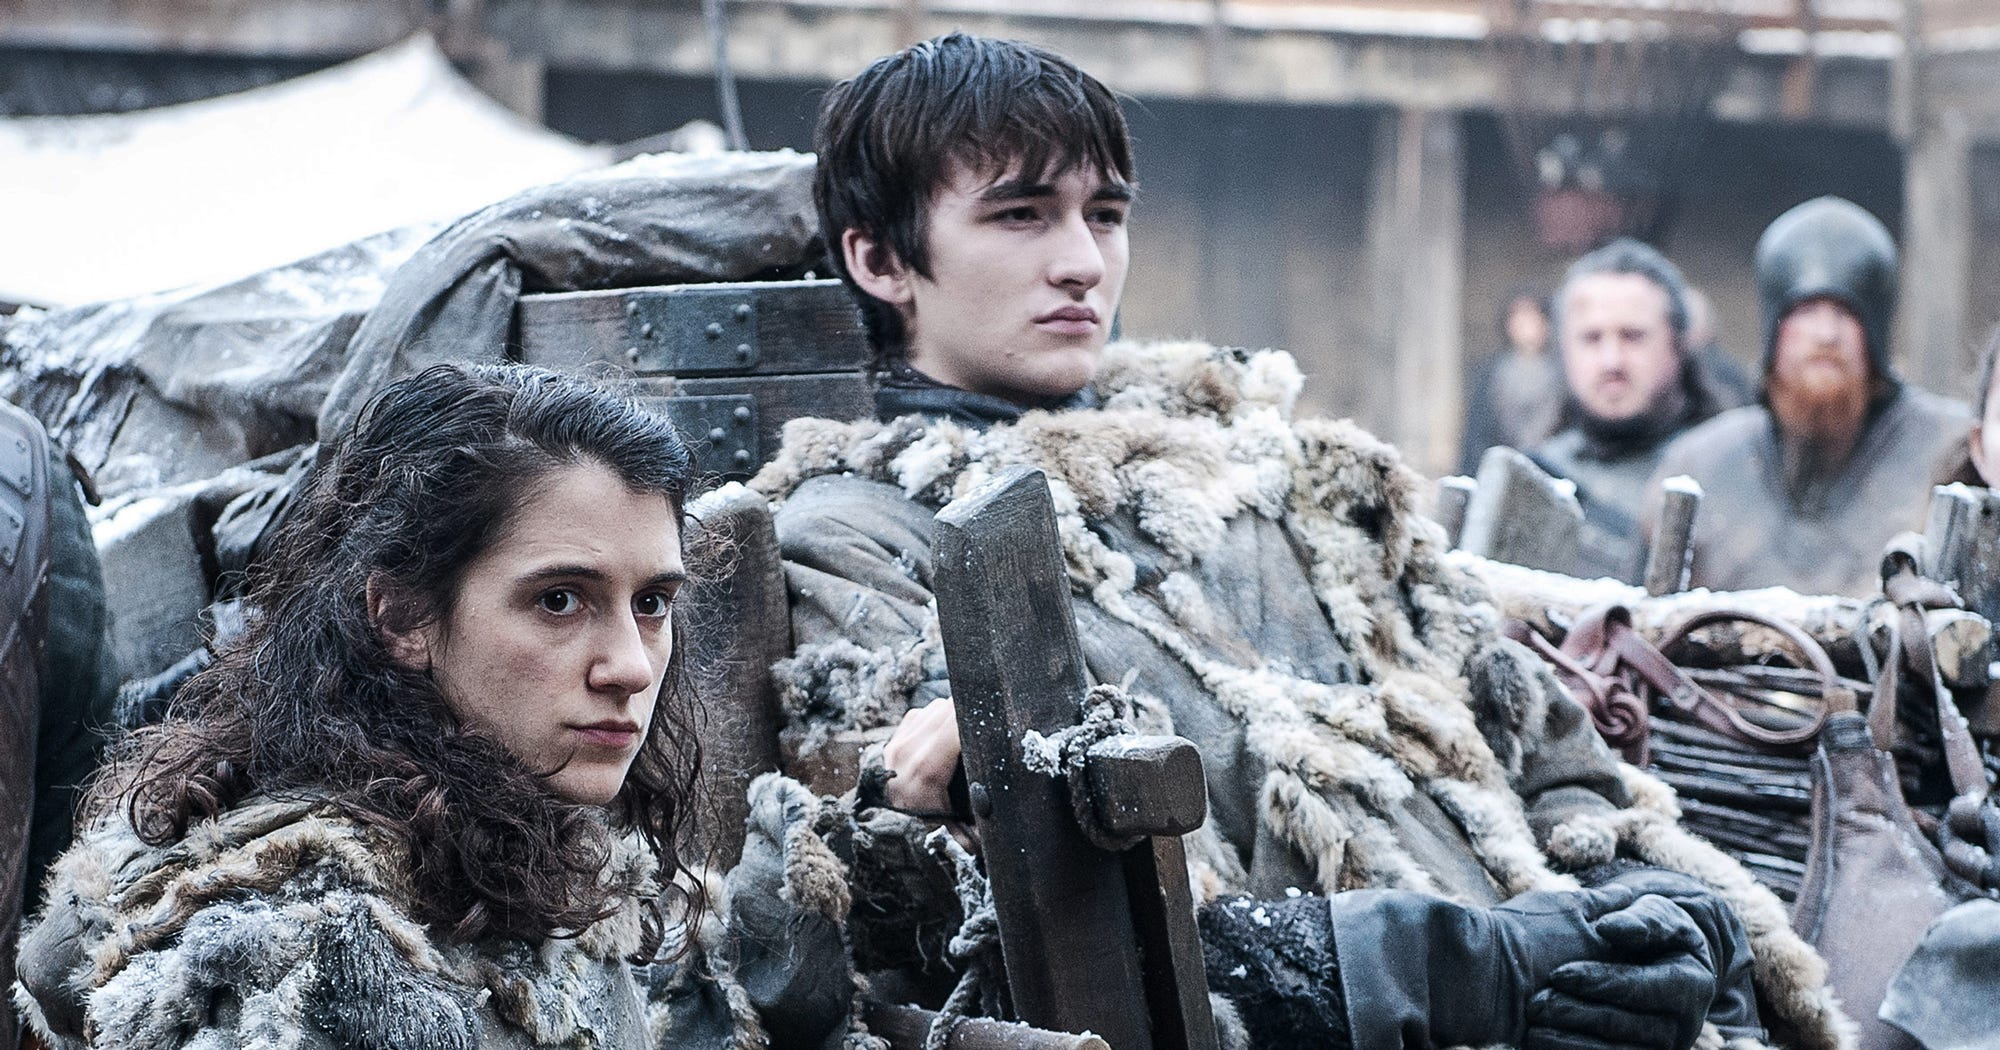 If Bran Stark Is The Lord Of Light, Things Could Be Much Darker Than We Think In Westeros